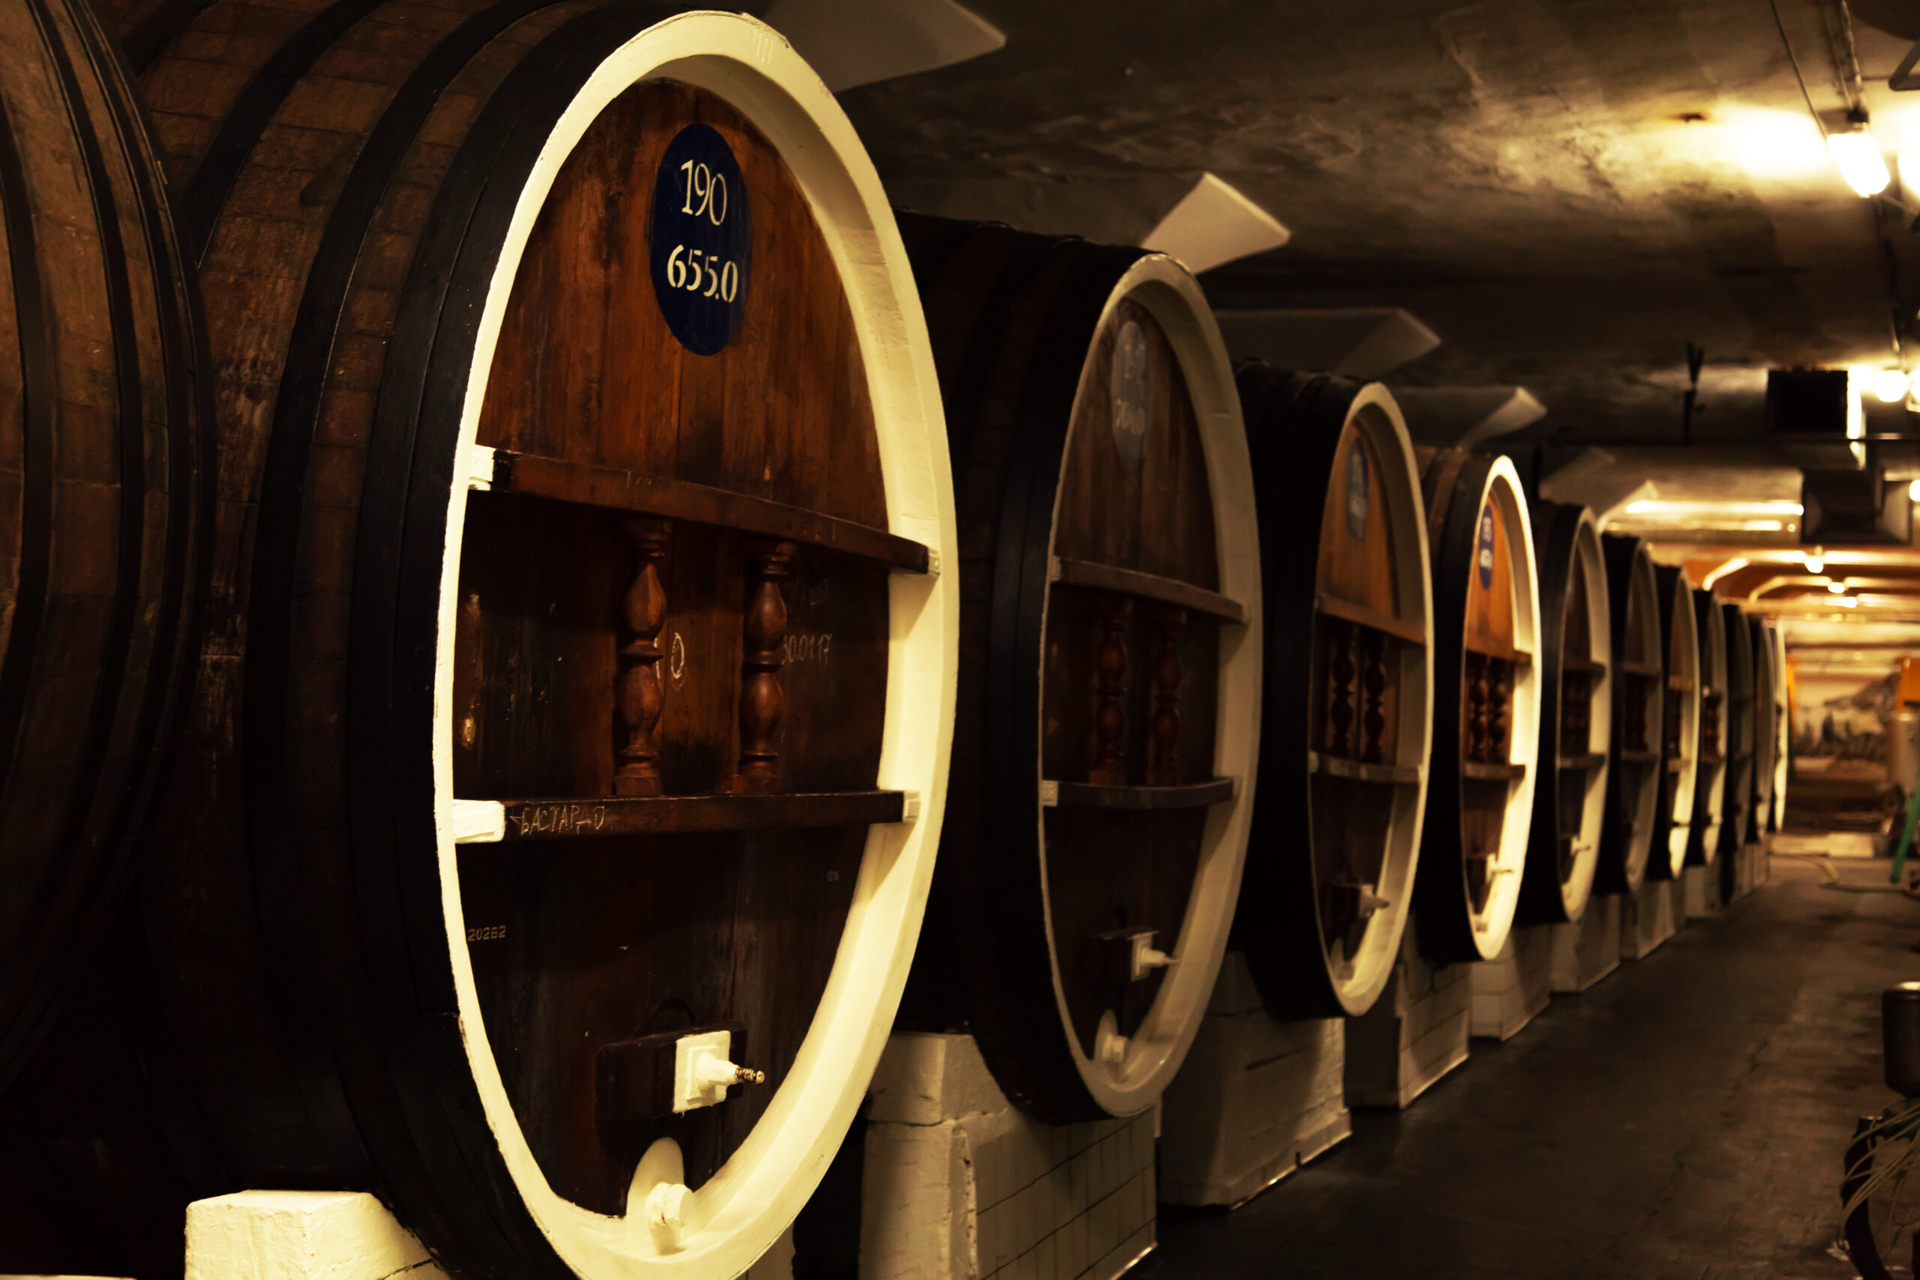 A wine cellar with the barrels of wine